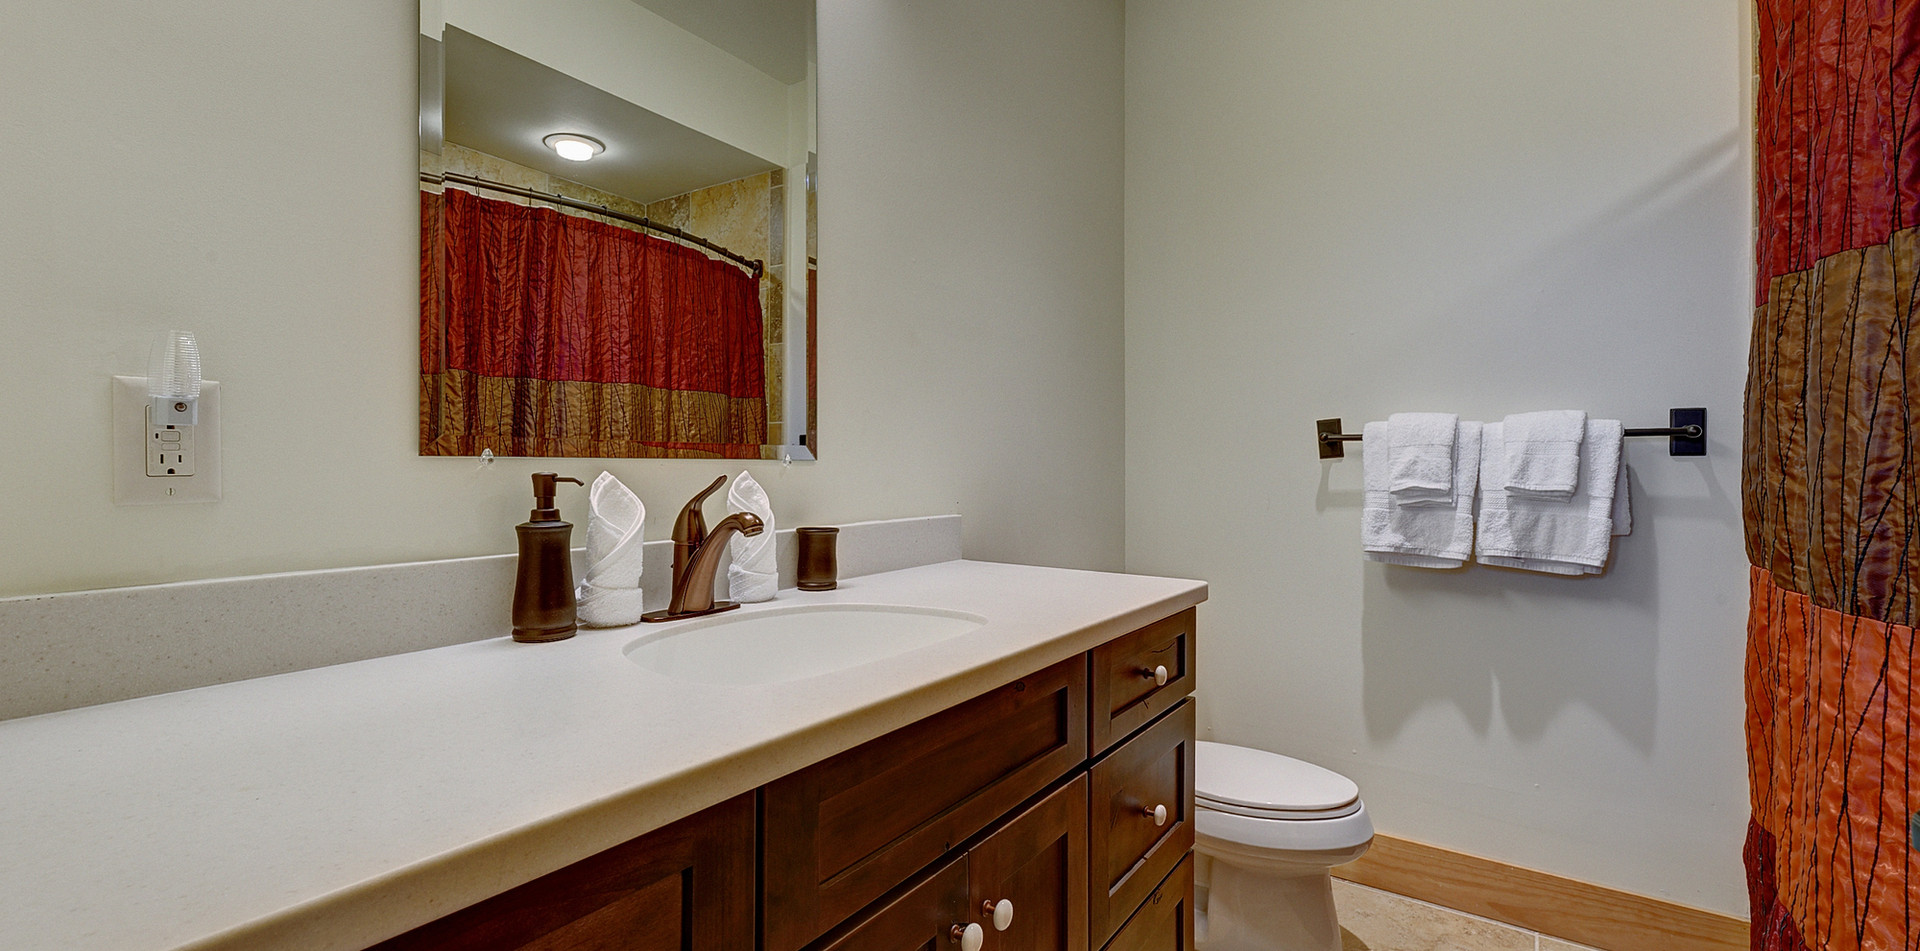 The second full bathroom is on the lower level.